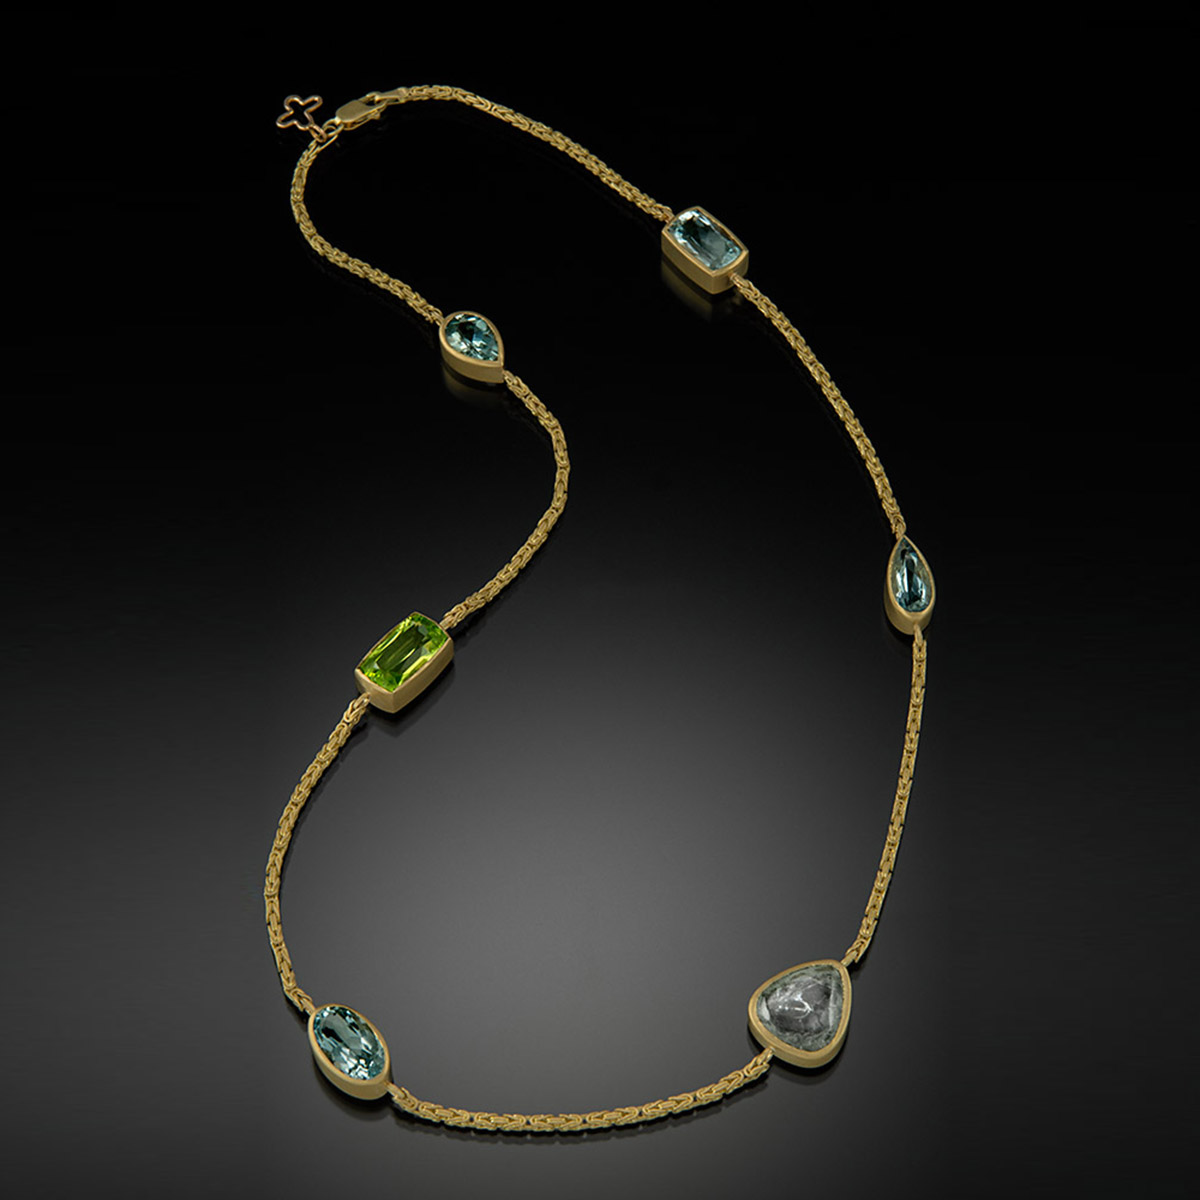 18K brushed yellow gold necklace with Aquamarine, Peridot and Tourmaline.